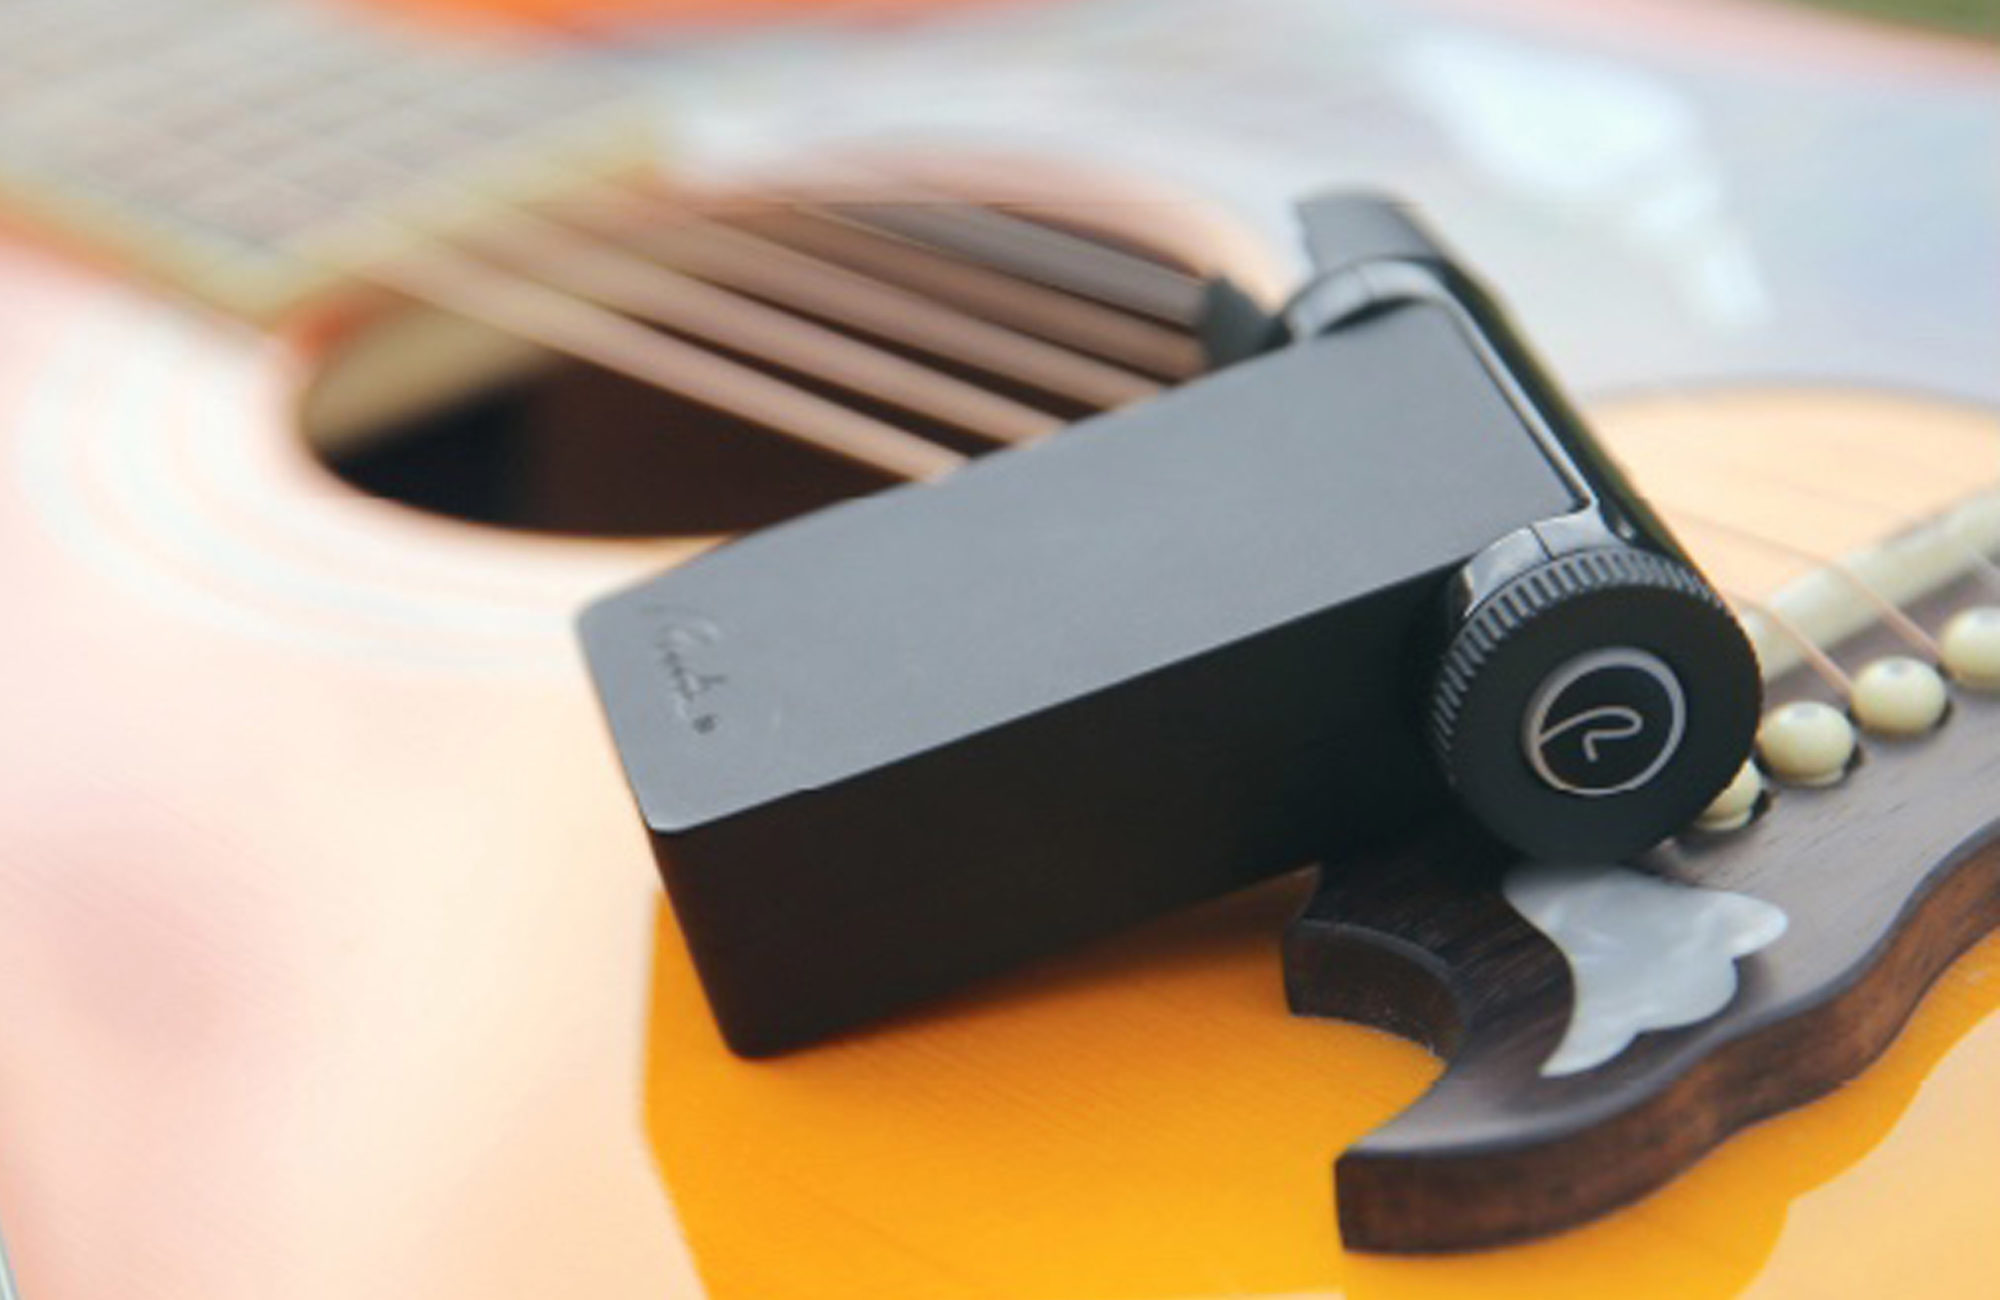 Roadie 2 Automatic Guitar Tuner is the easiest and most accurate way to tune your guitar